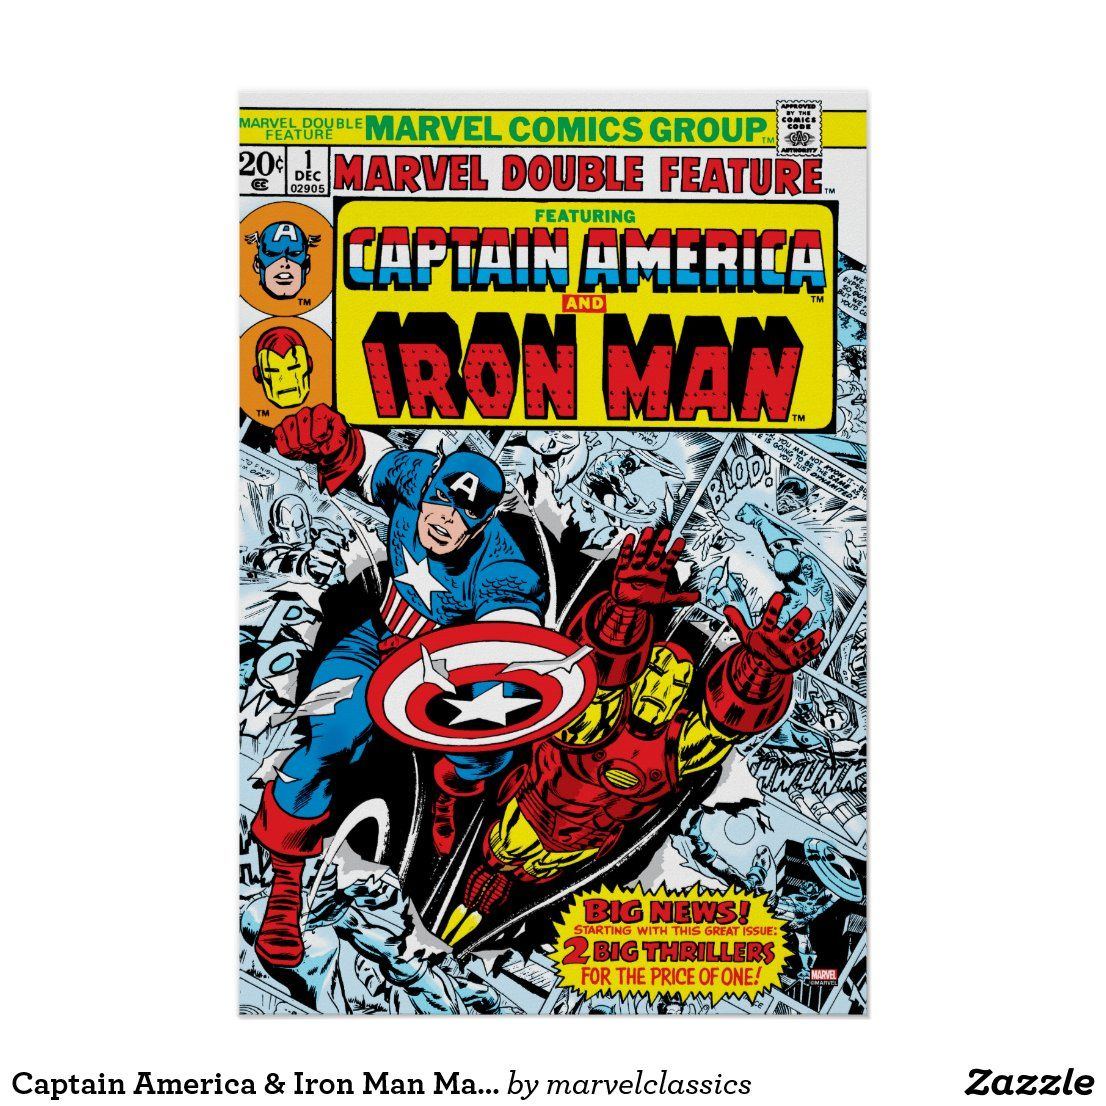 Captain America & Iron Man Marvel Double Feature Poster